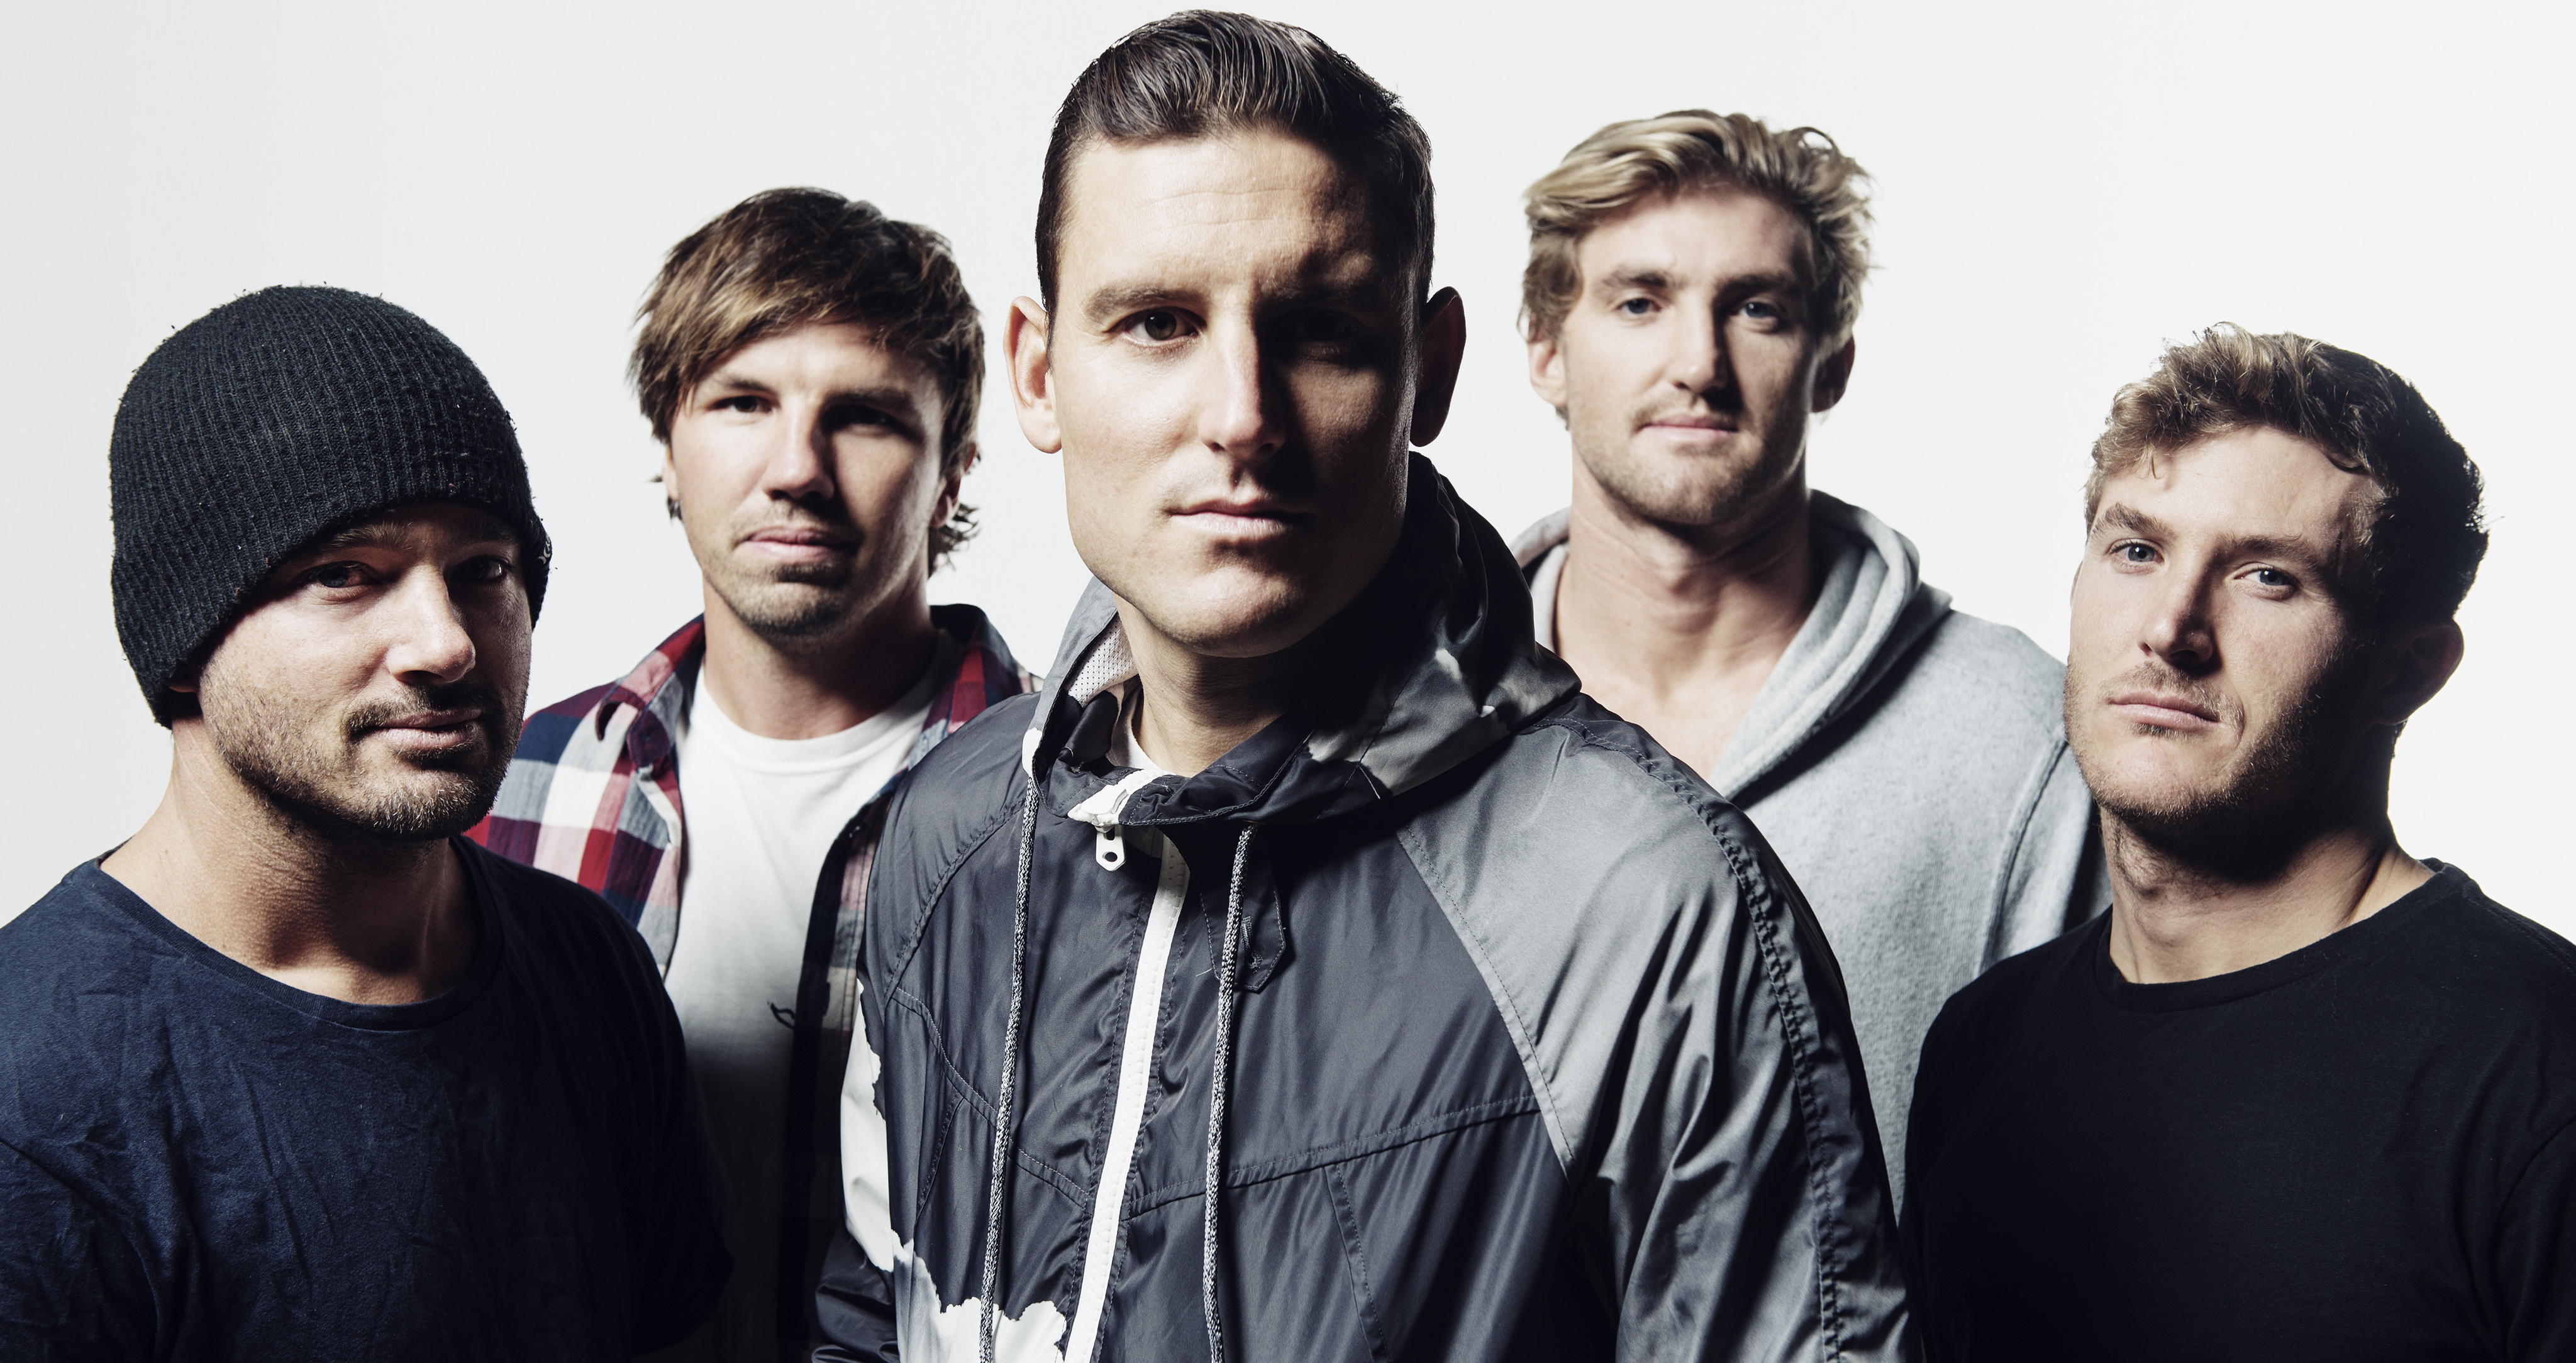 A Parkway Drive Tour